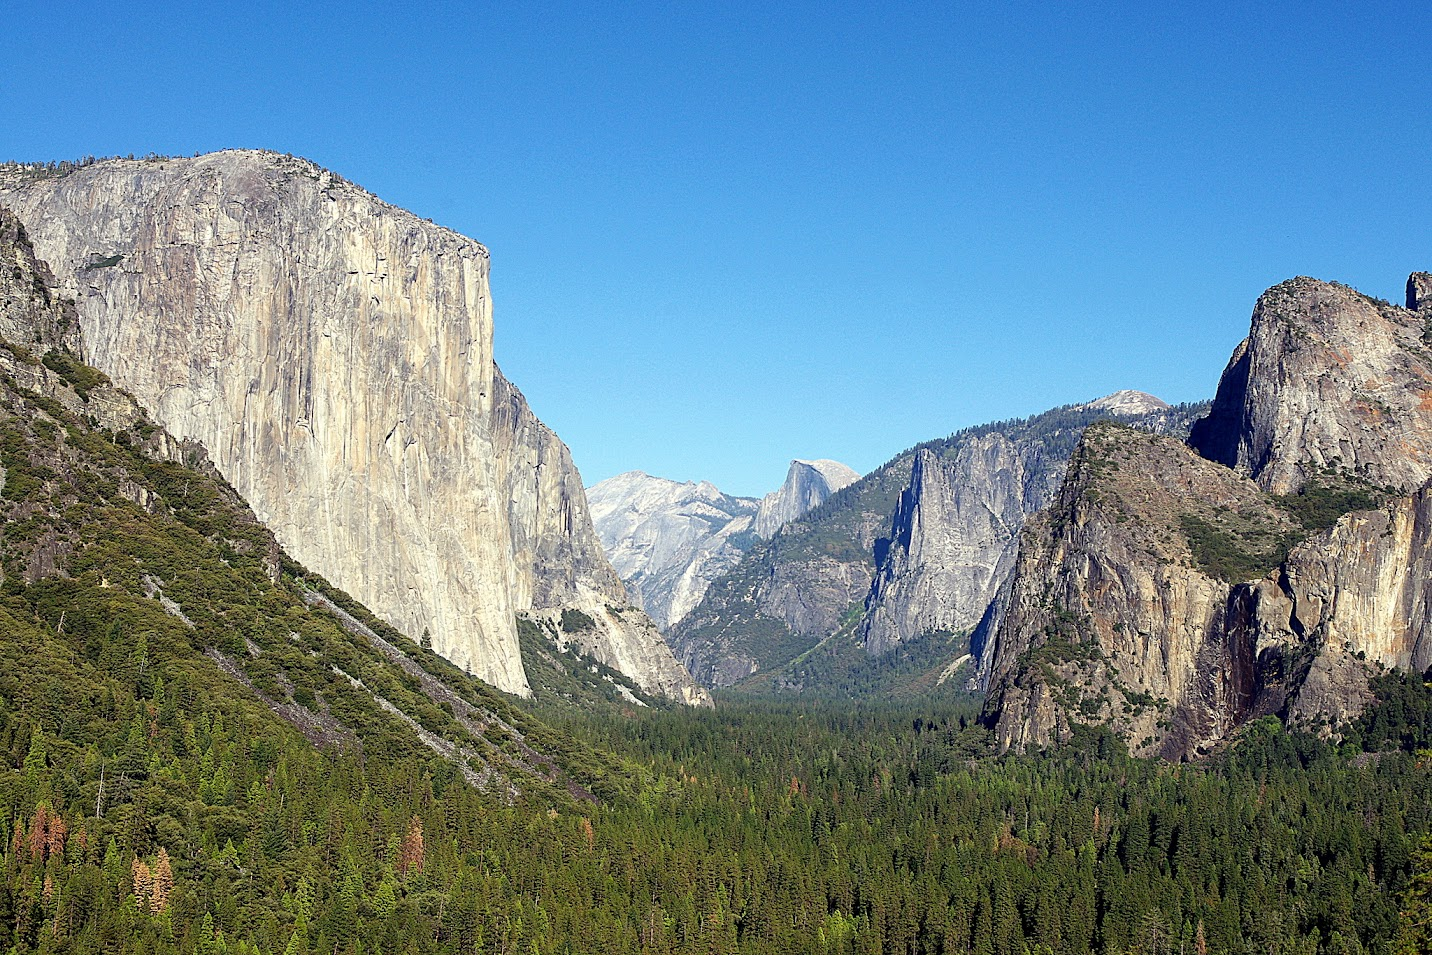 Valle de Yosemite, Tunnel View